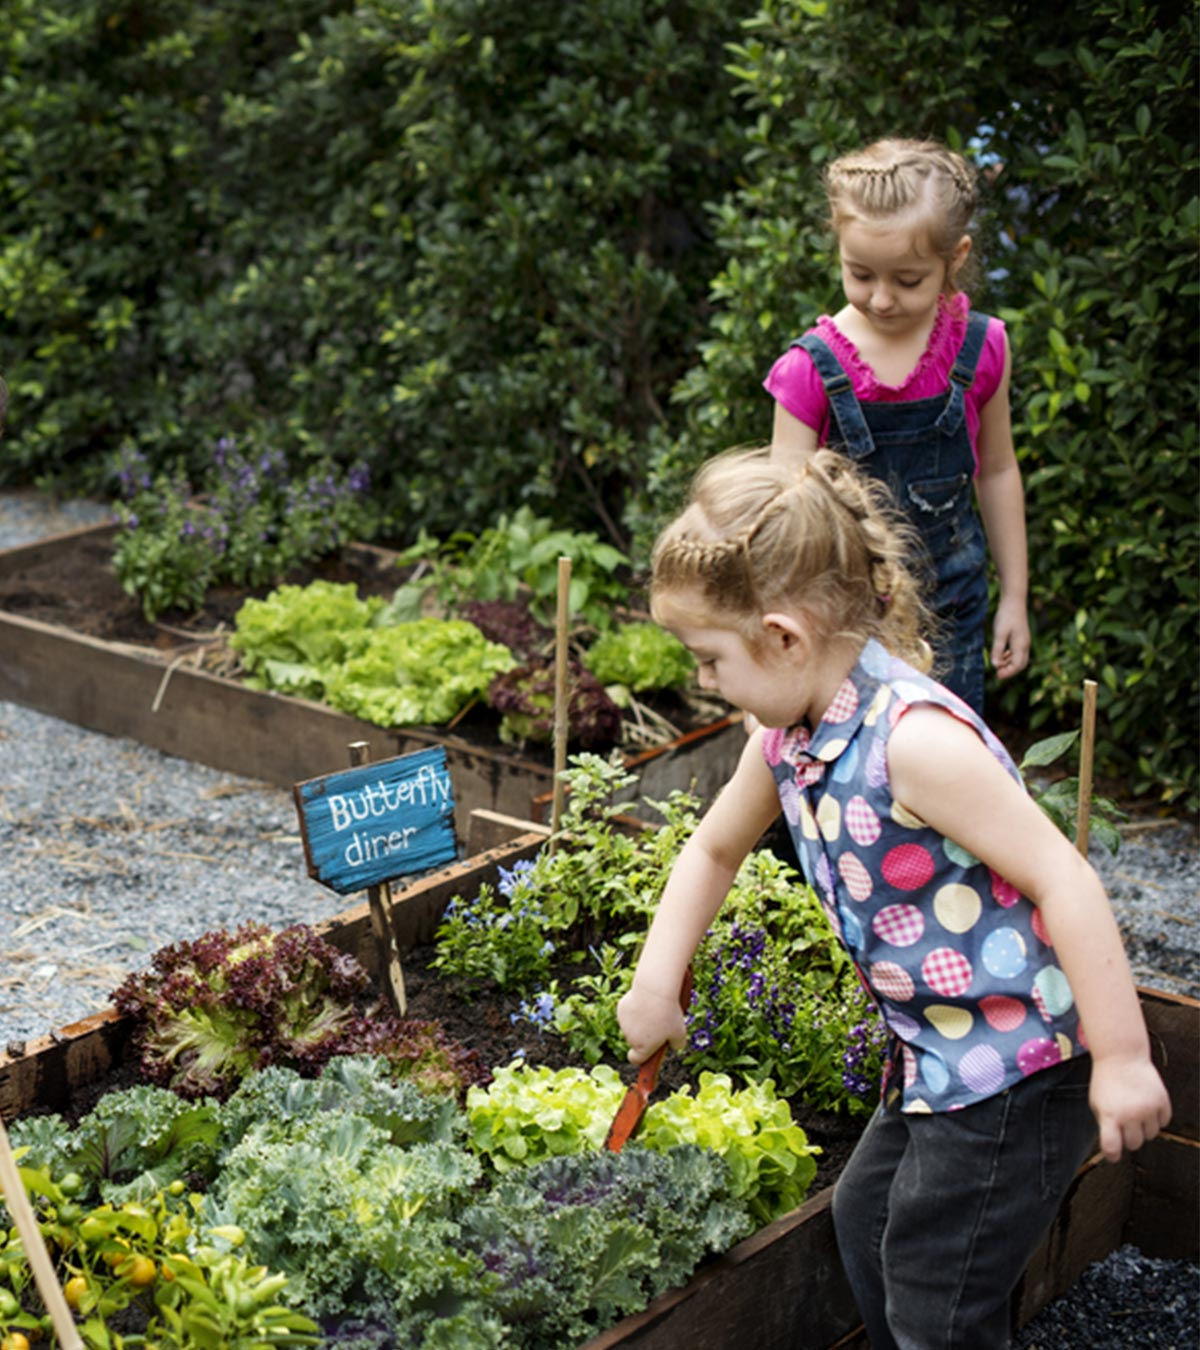 20 Fun DIY Garden Ideas For Kids Of All Ages